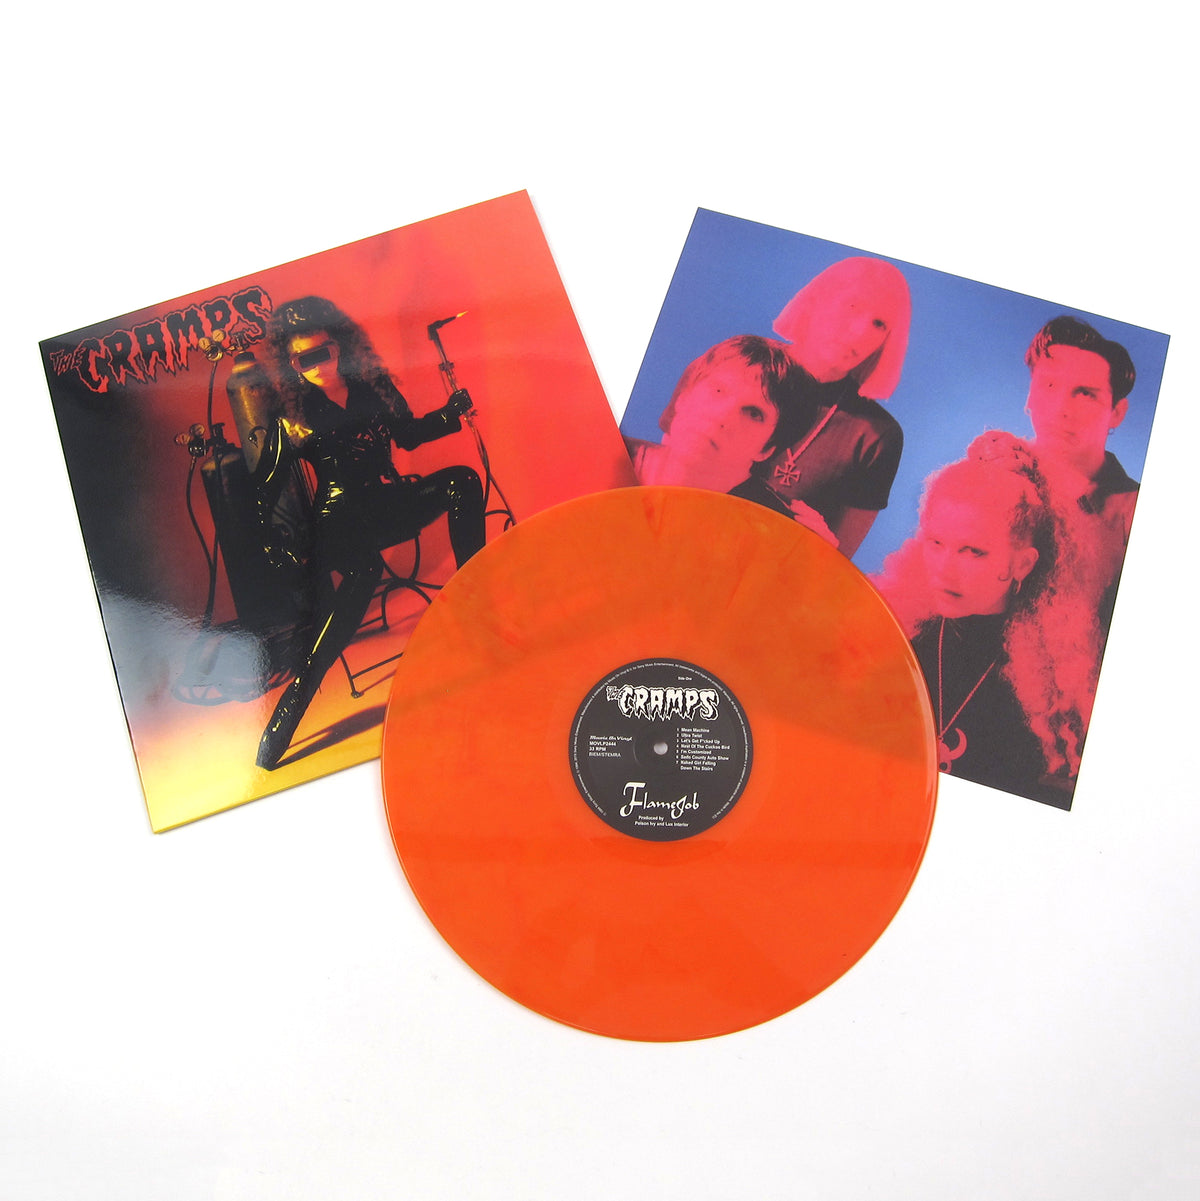 The Cramps: Flamejob (Music On Vinyl 180g, Colored Vinyl) Vinyl LP